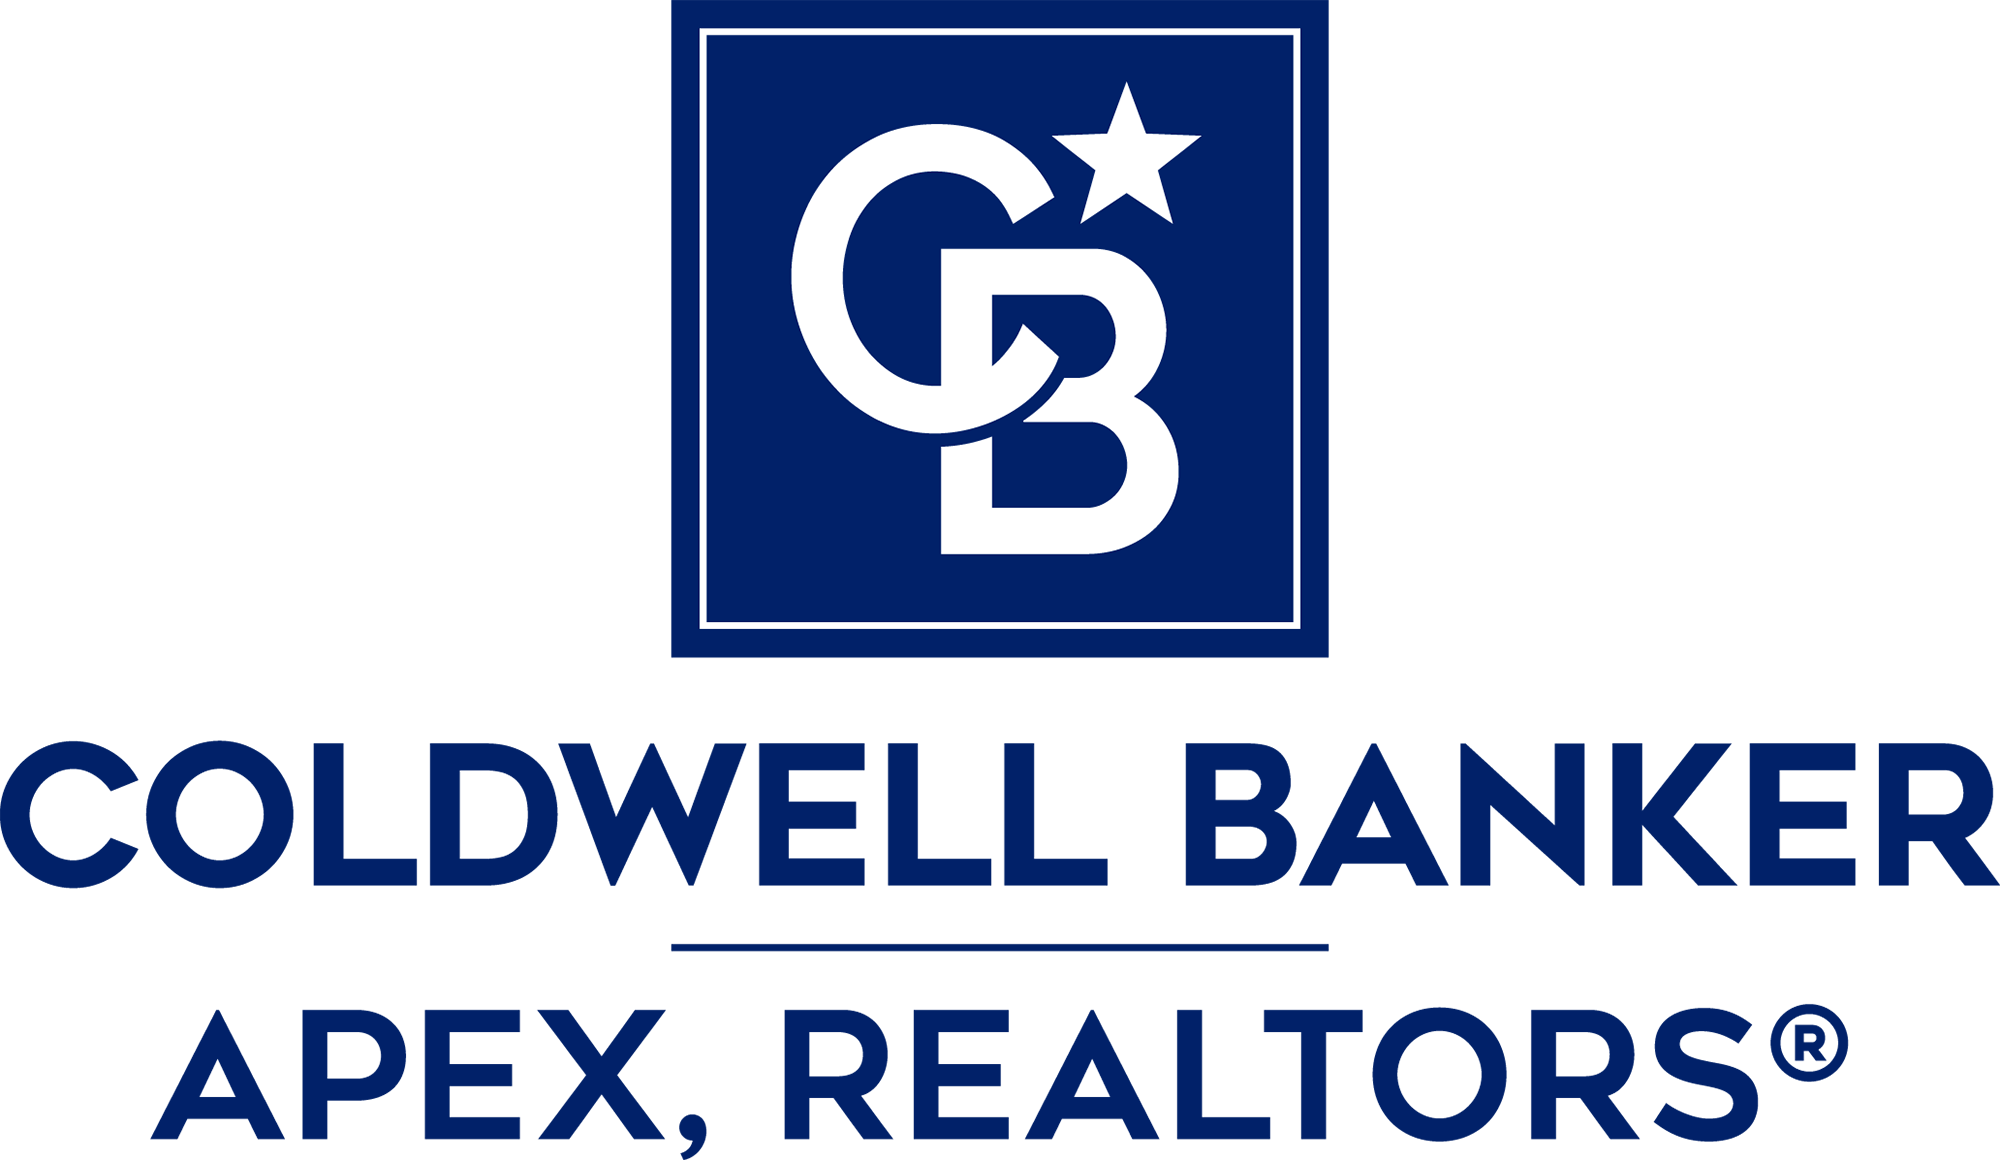 Marissa Grigsby - Coldwell Banker Apex Realtors Logo